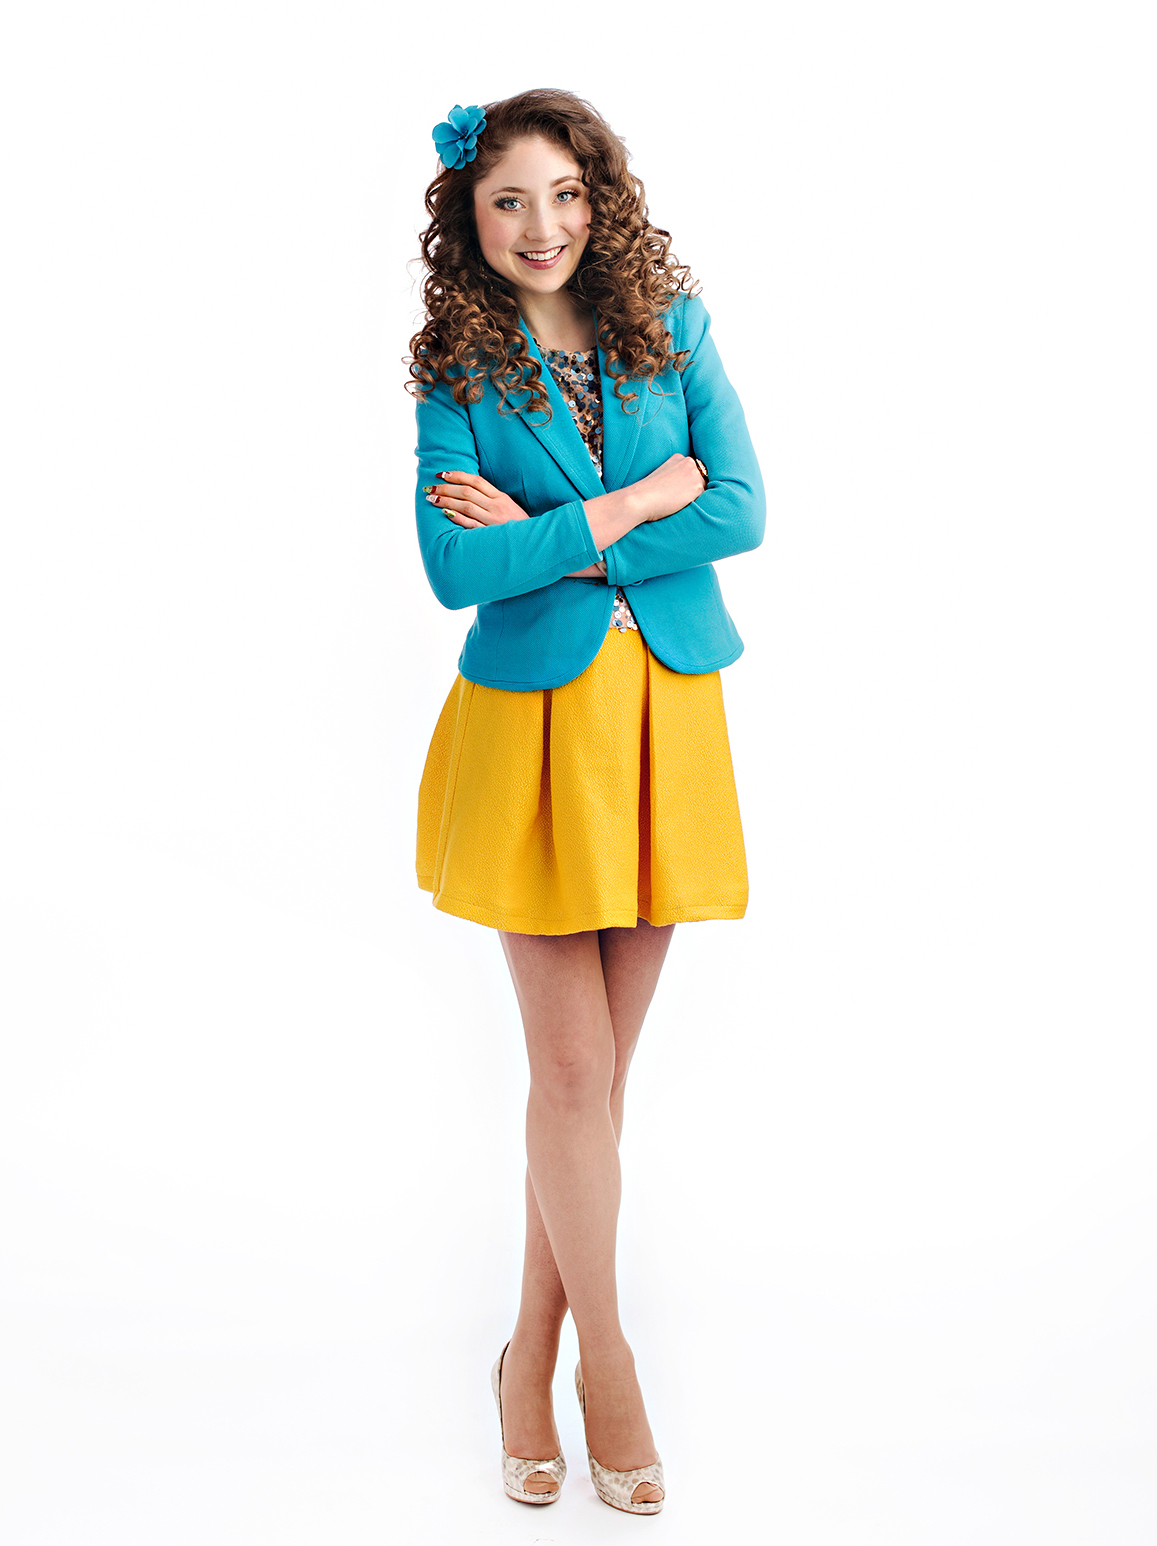 Kelly Lovell standing with her arms crossed in a power pose with a warm smile on her face and wearing blue and yellow blazar